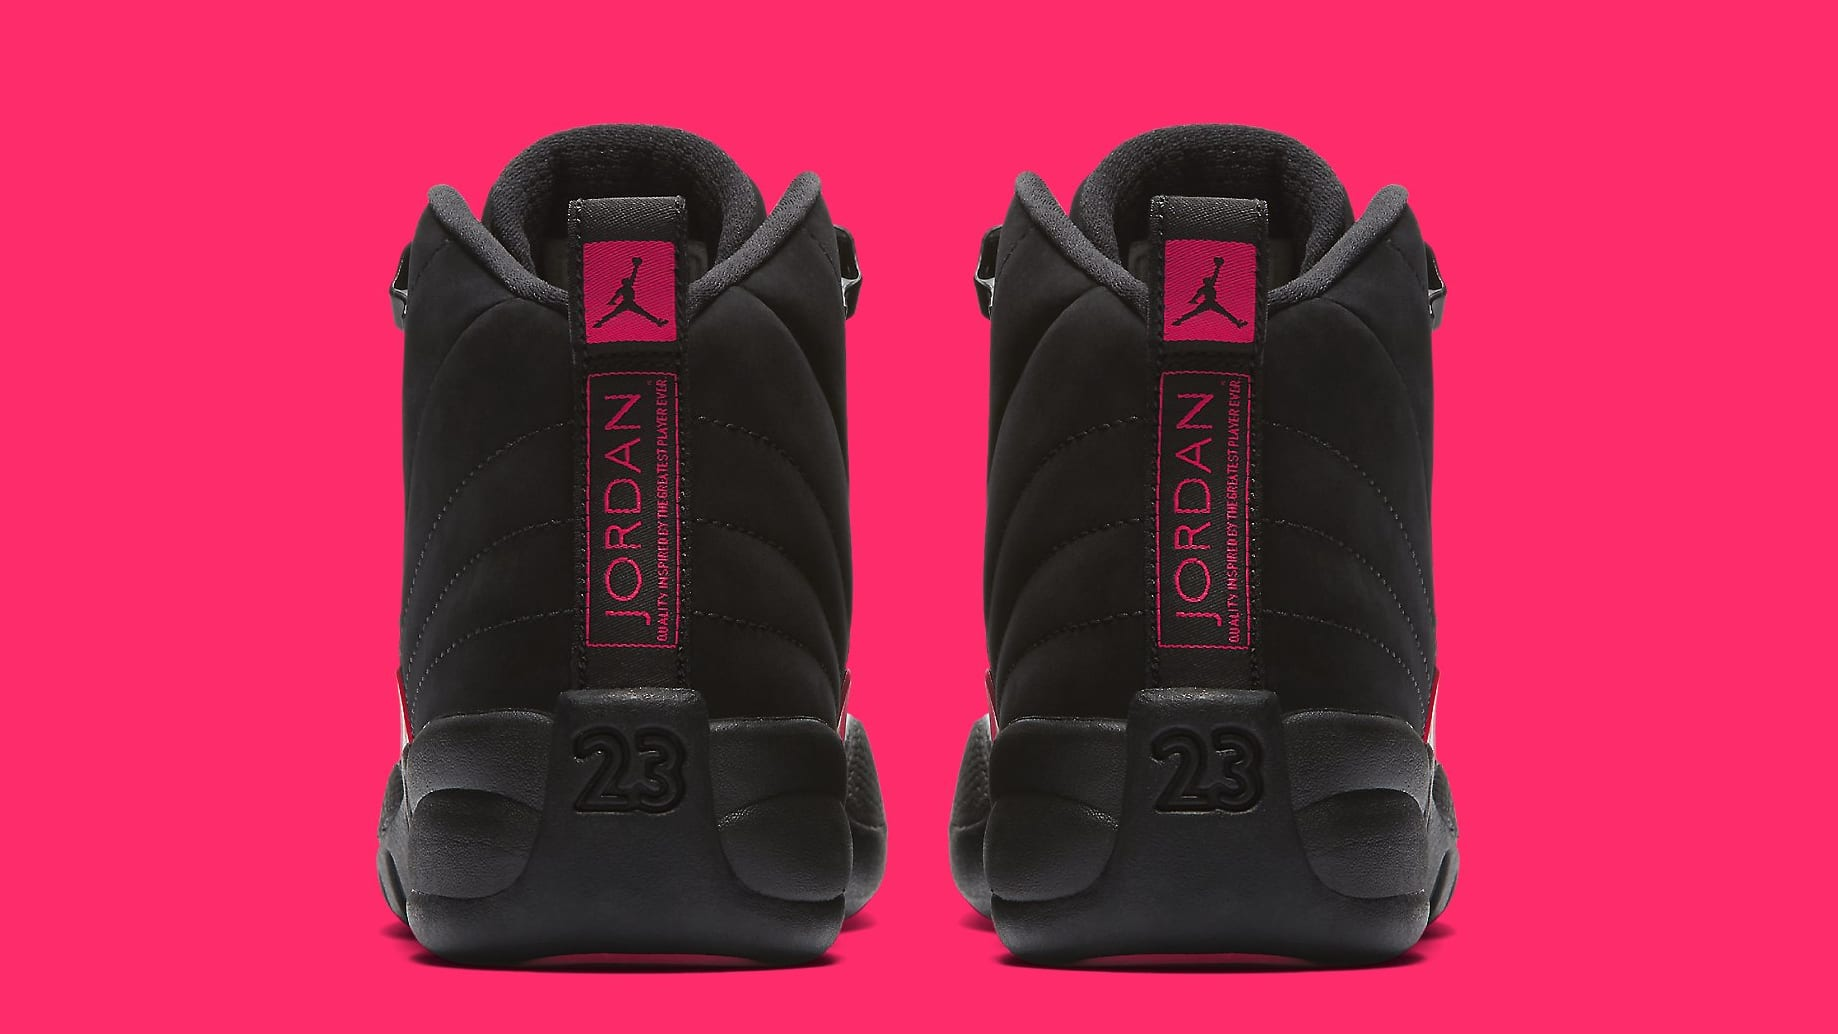 1f53133732f New Black and Pink Air Jordan 12s Dropping Next Week – DJScreamTV.com